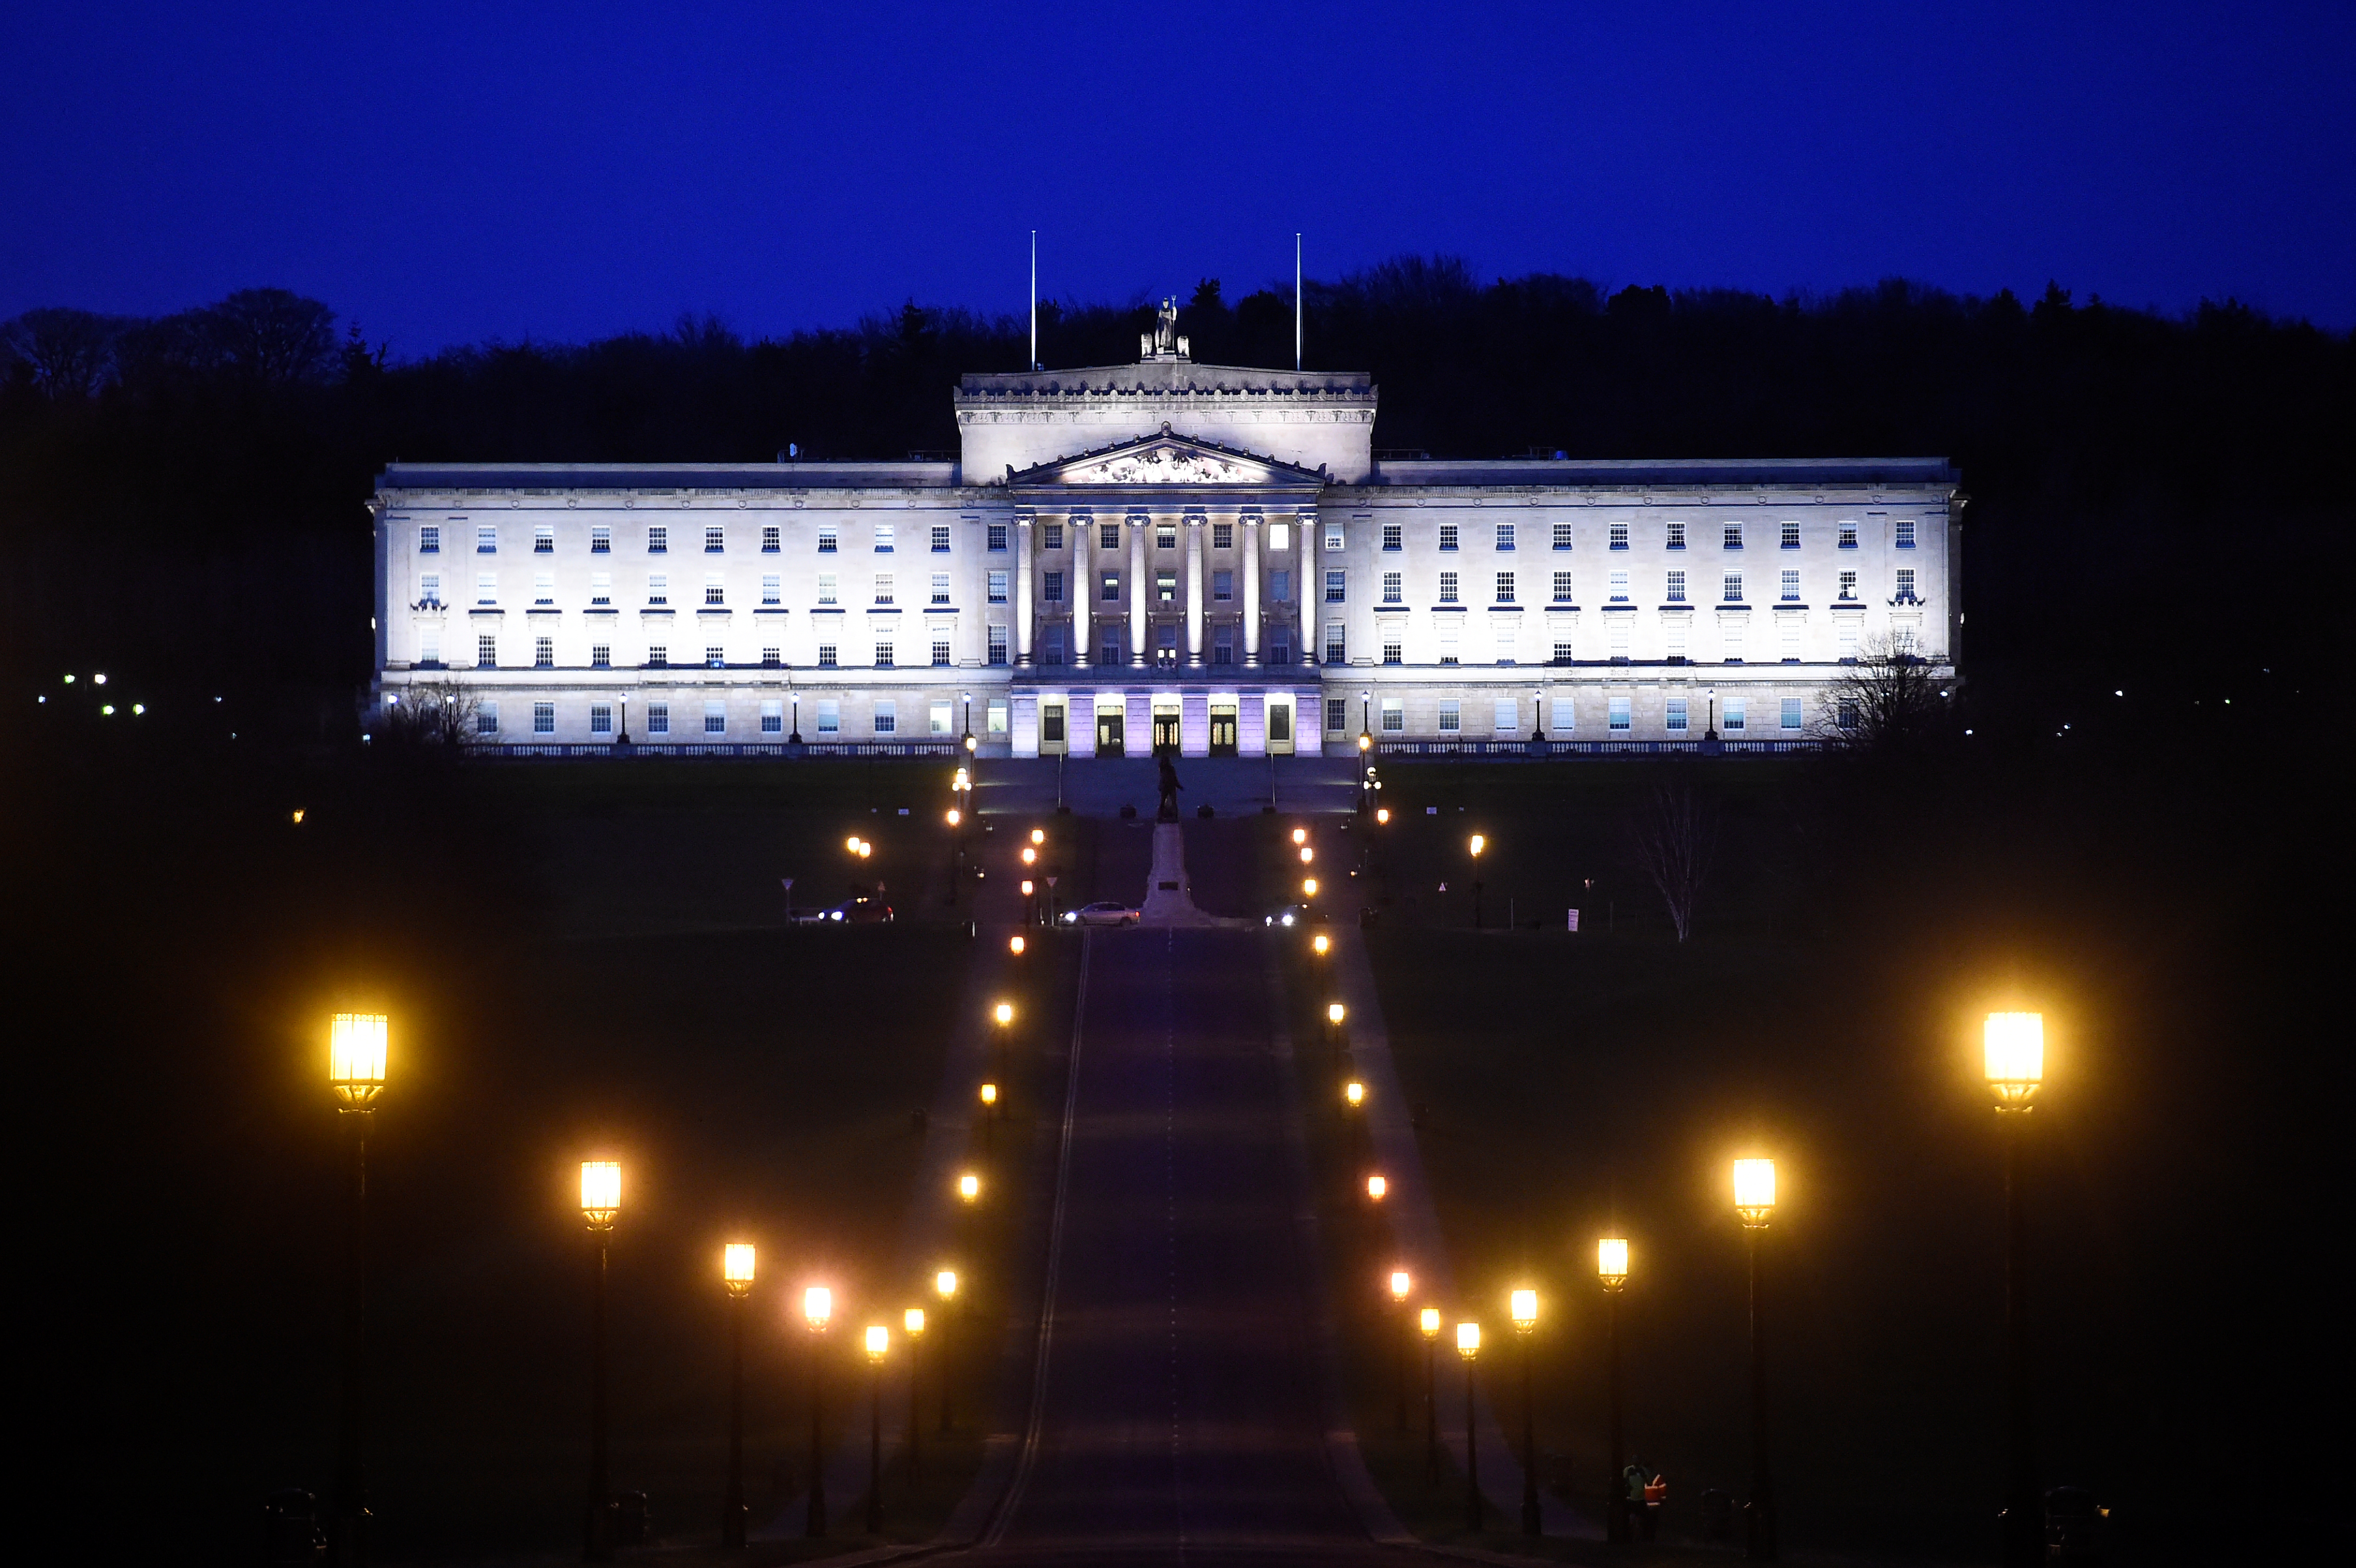 Parliament buildings at Stormont is seen at night in Belfast, Northern Ireland February 15, 2018. REUTERS/Clodagh Kilcoyne - RC165C1960E0